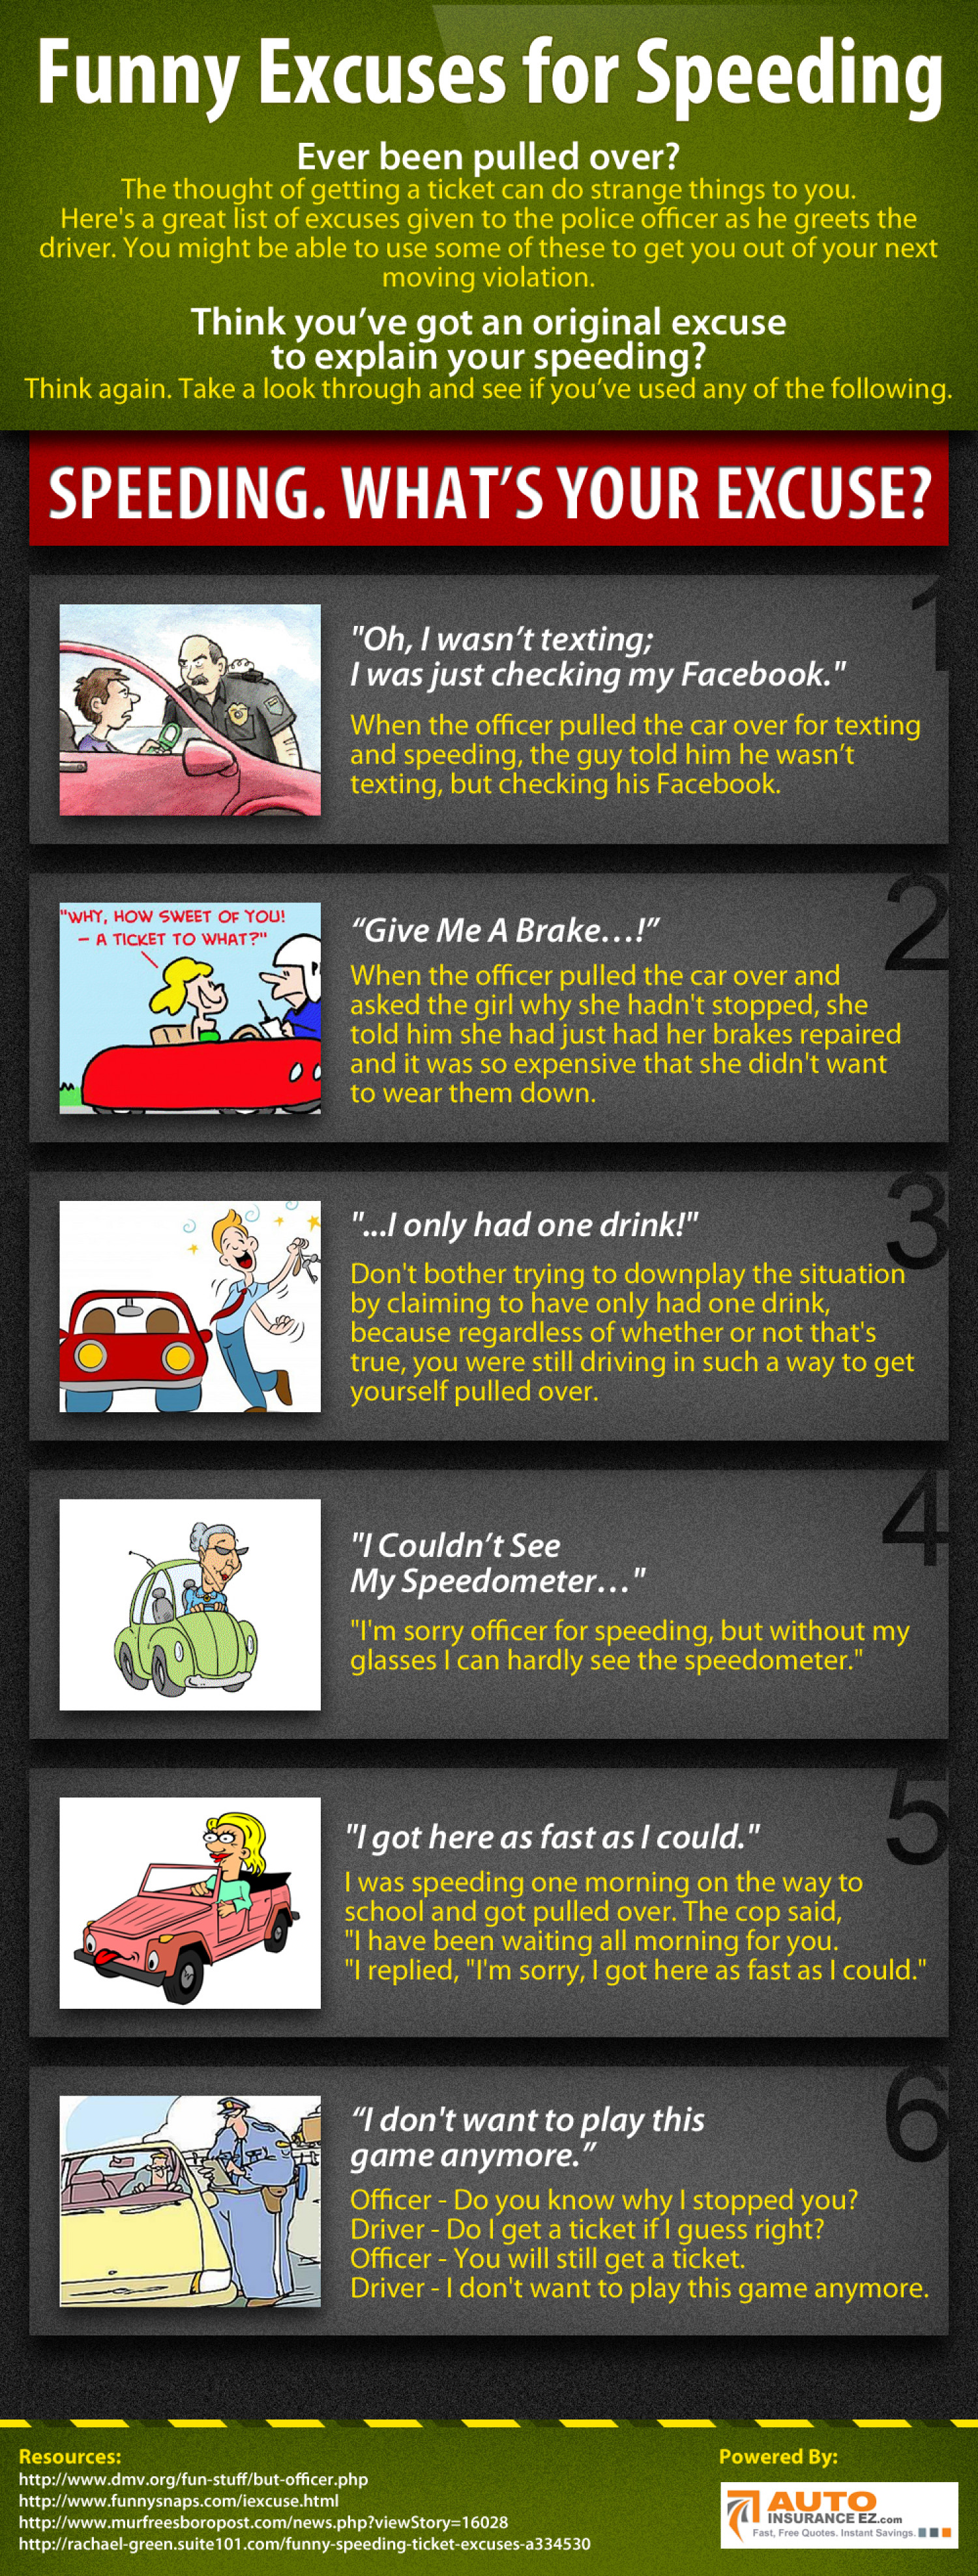 Most Popular Ticket Excuses Given to Cops  Infographic